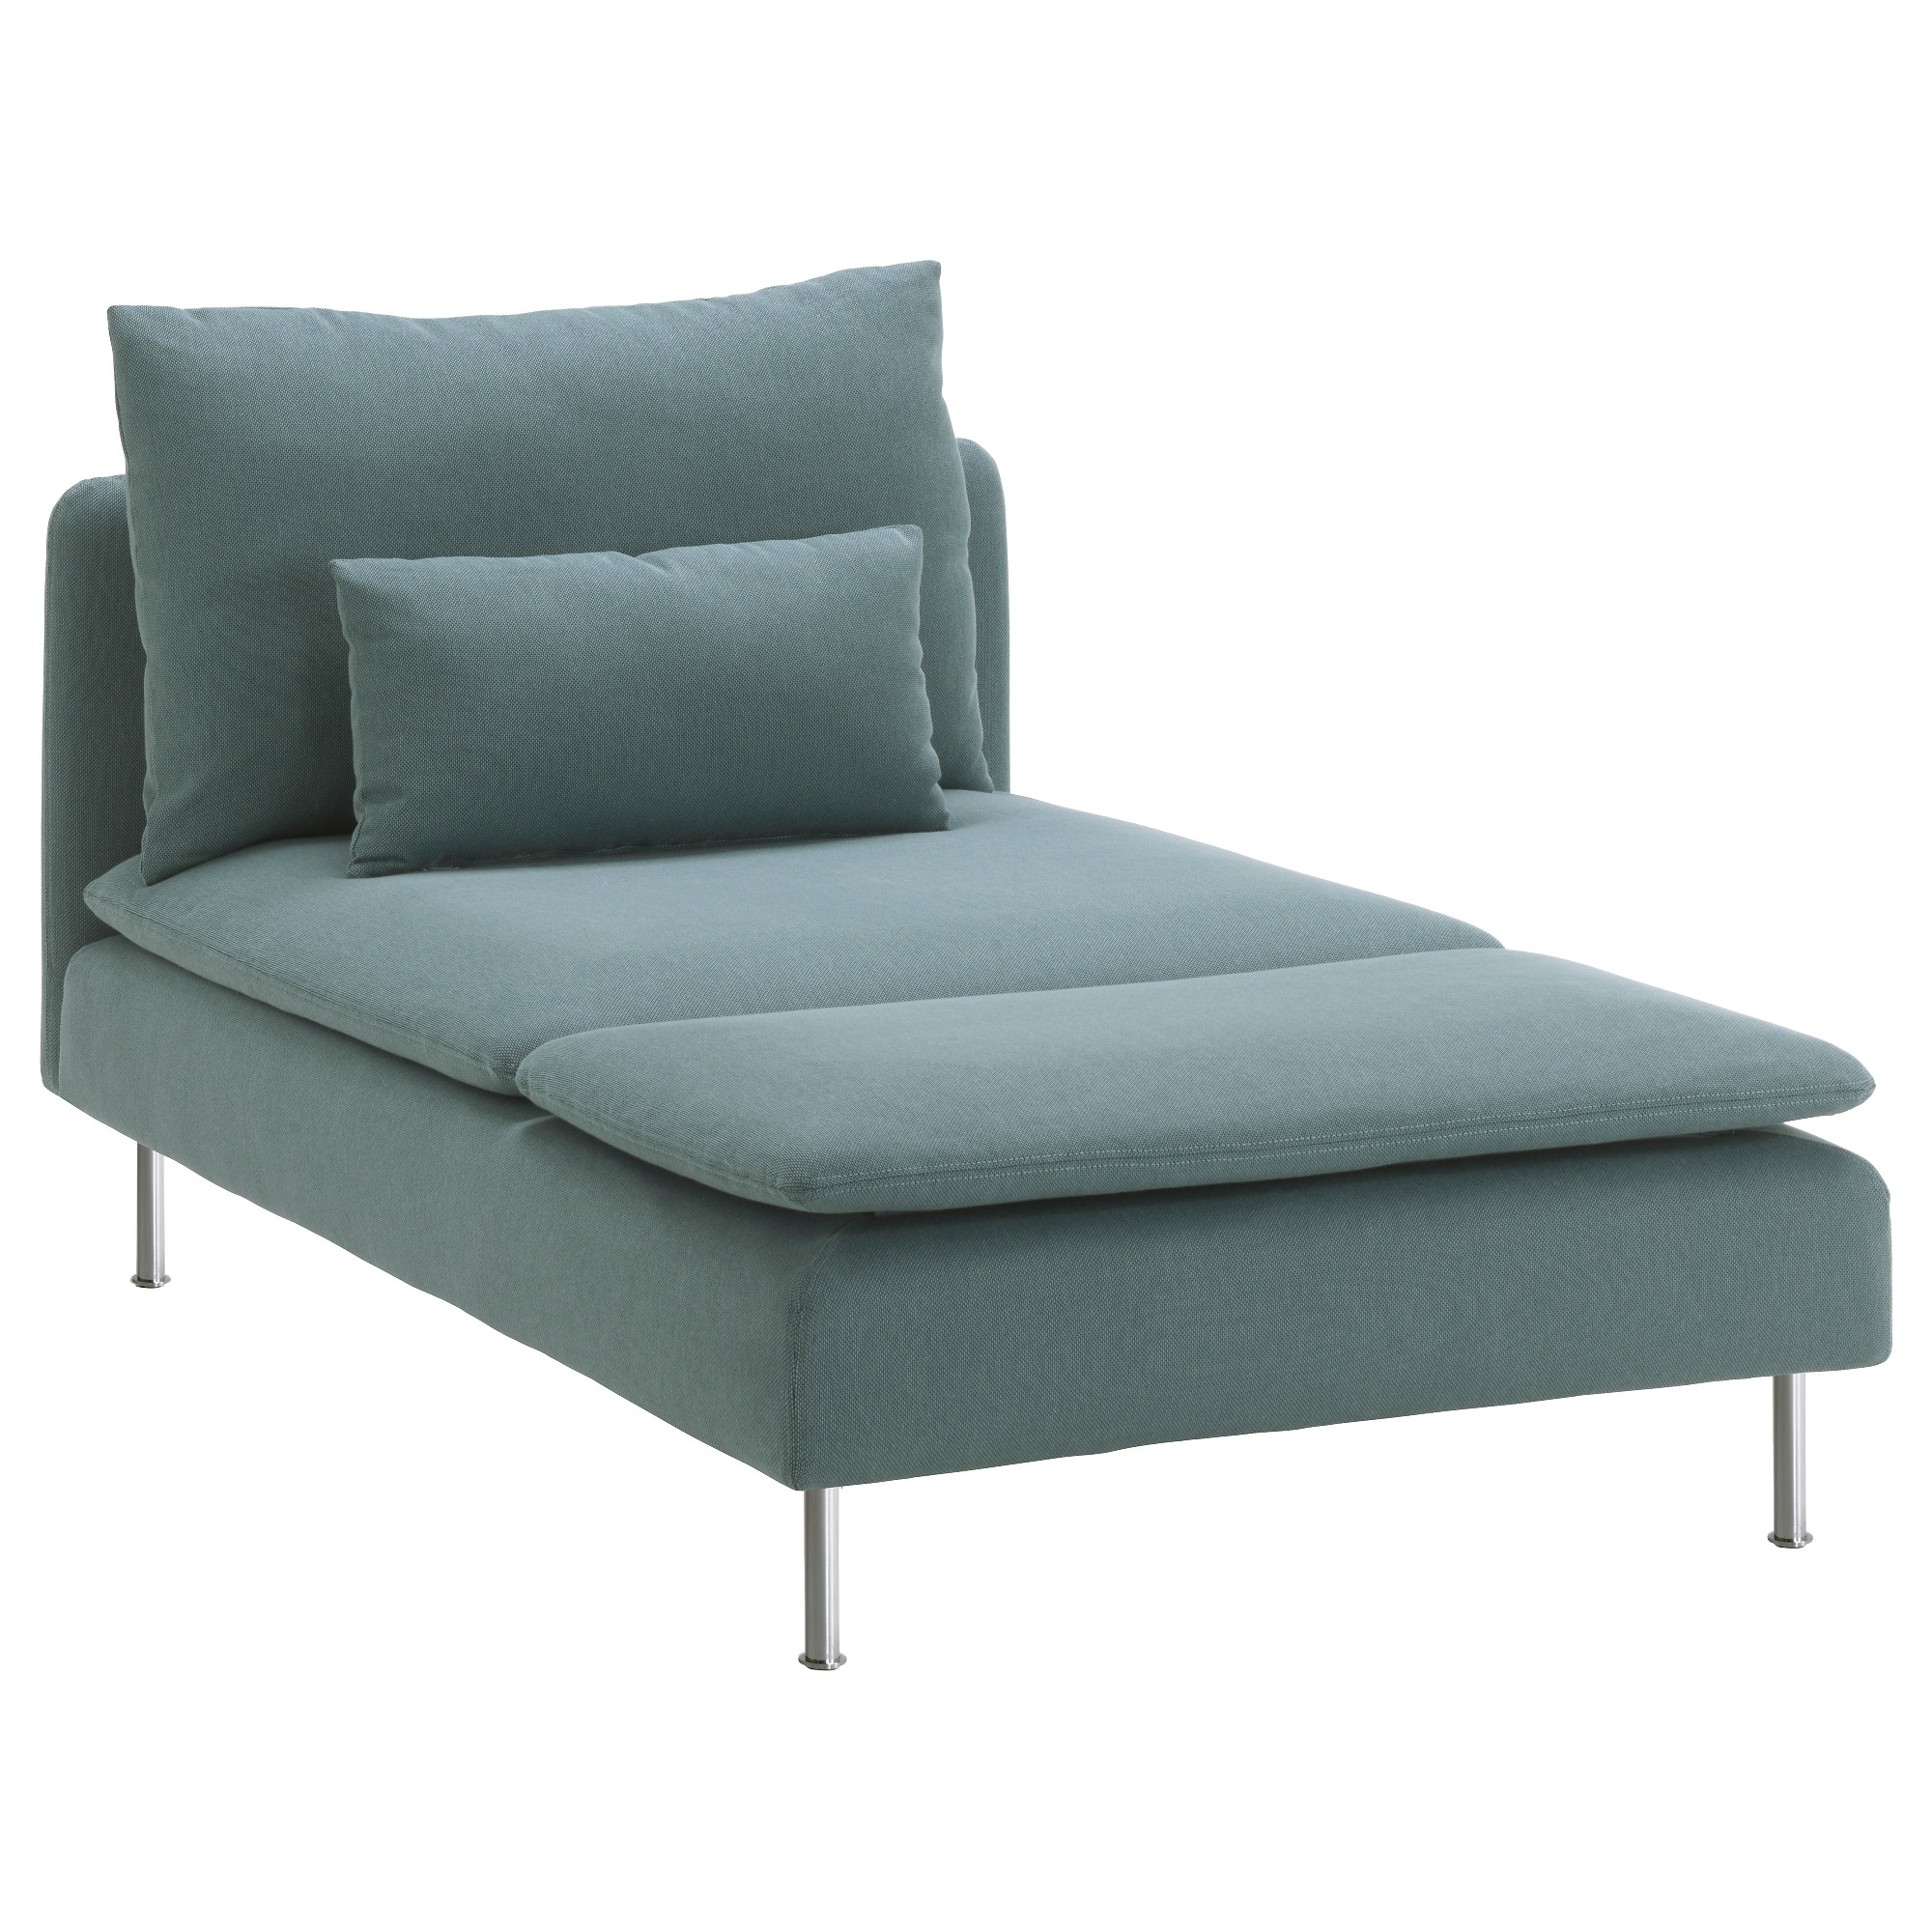 Most Recent Söderhamn Chaise – Samsta Dark Gray – Ikea With Regard To Ikea Chaise Lounge Chairs (View 12 of 15)